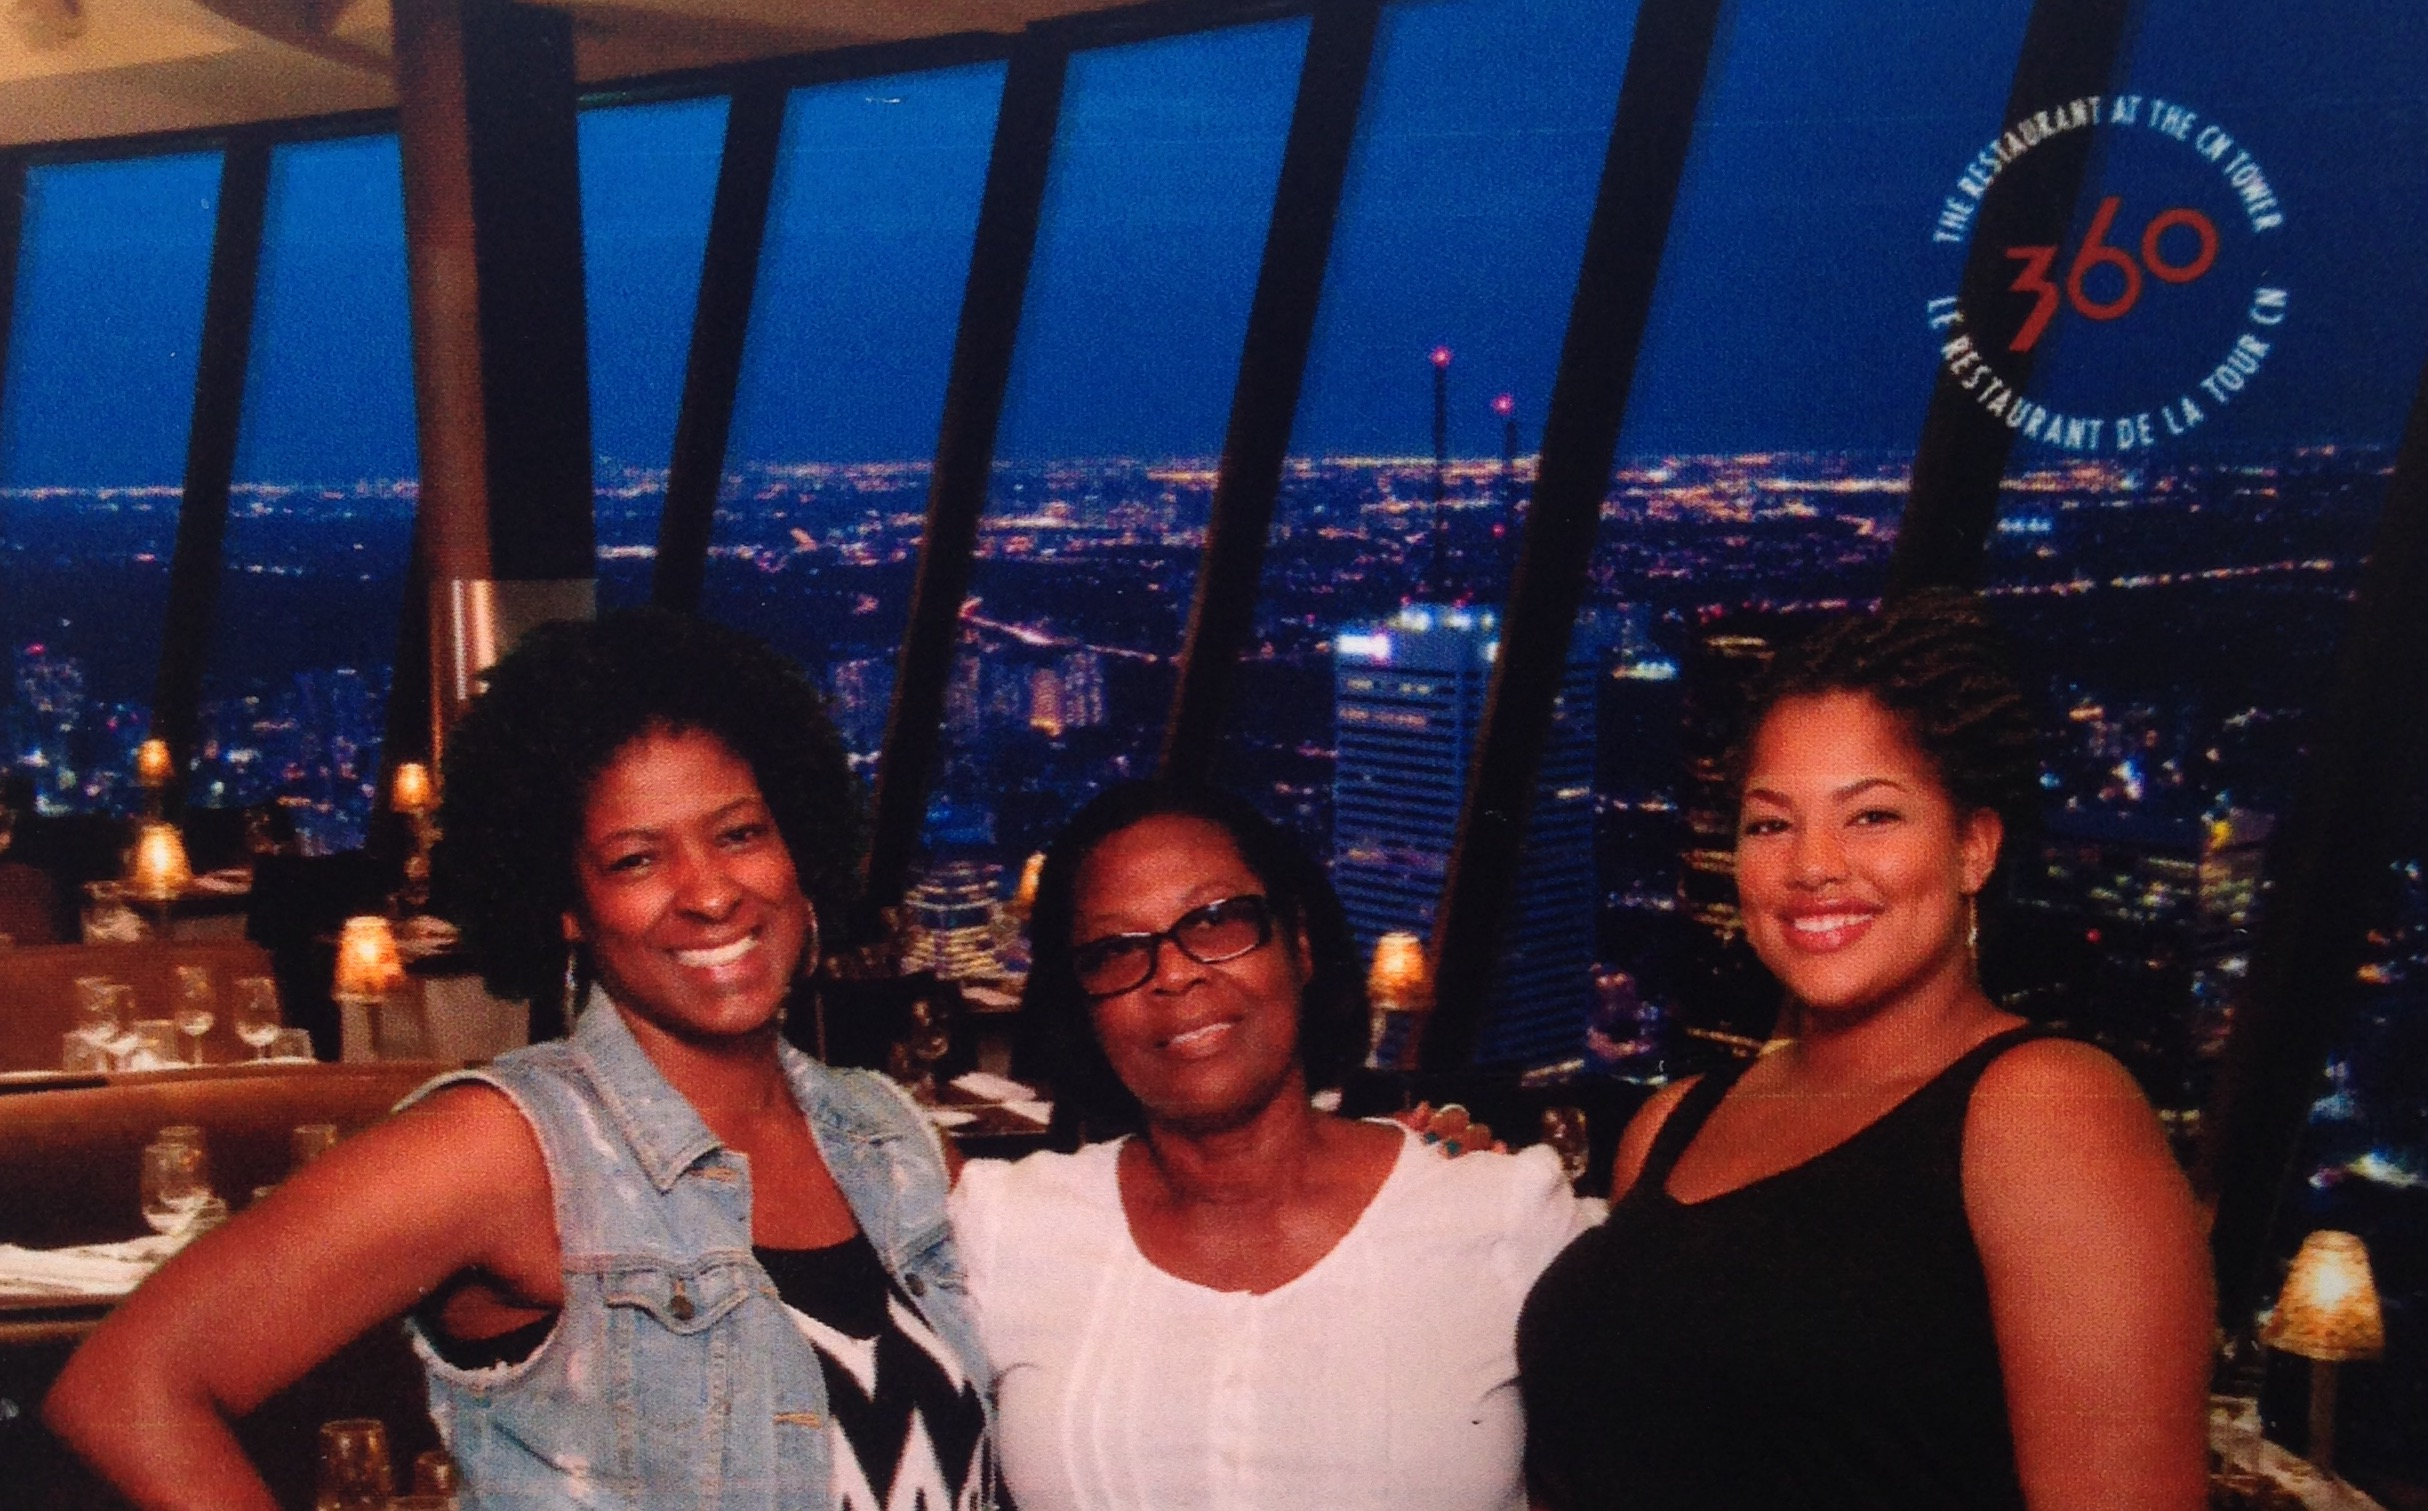 Dinner at the 360 Restaurant - CN Tower in Toronto, Canada